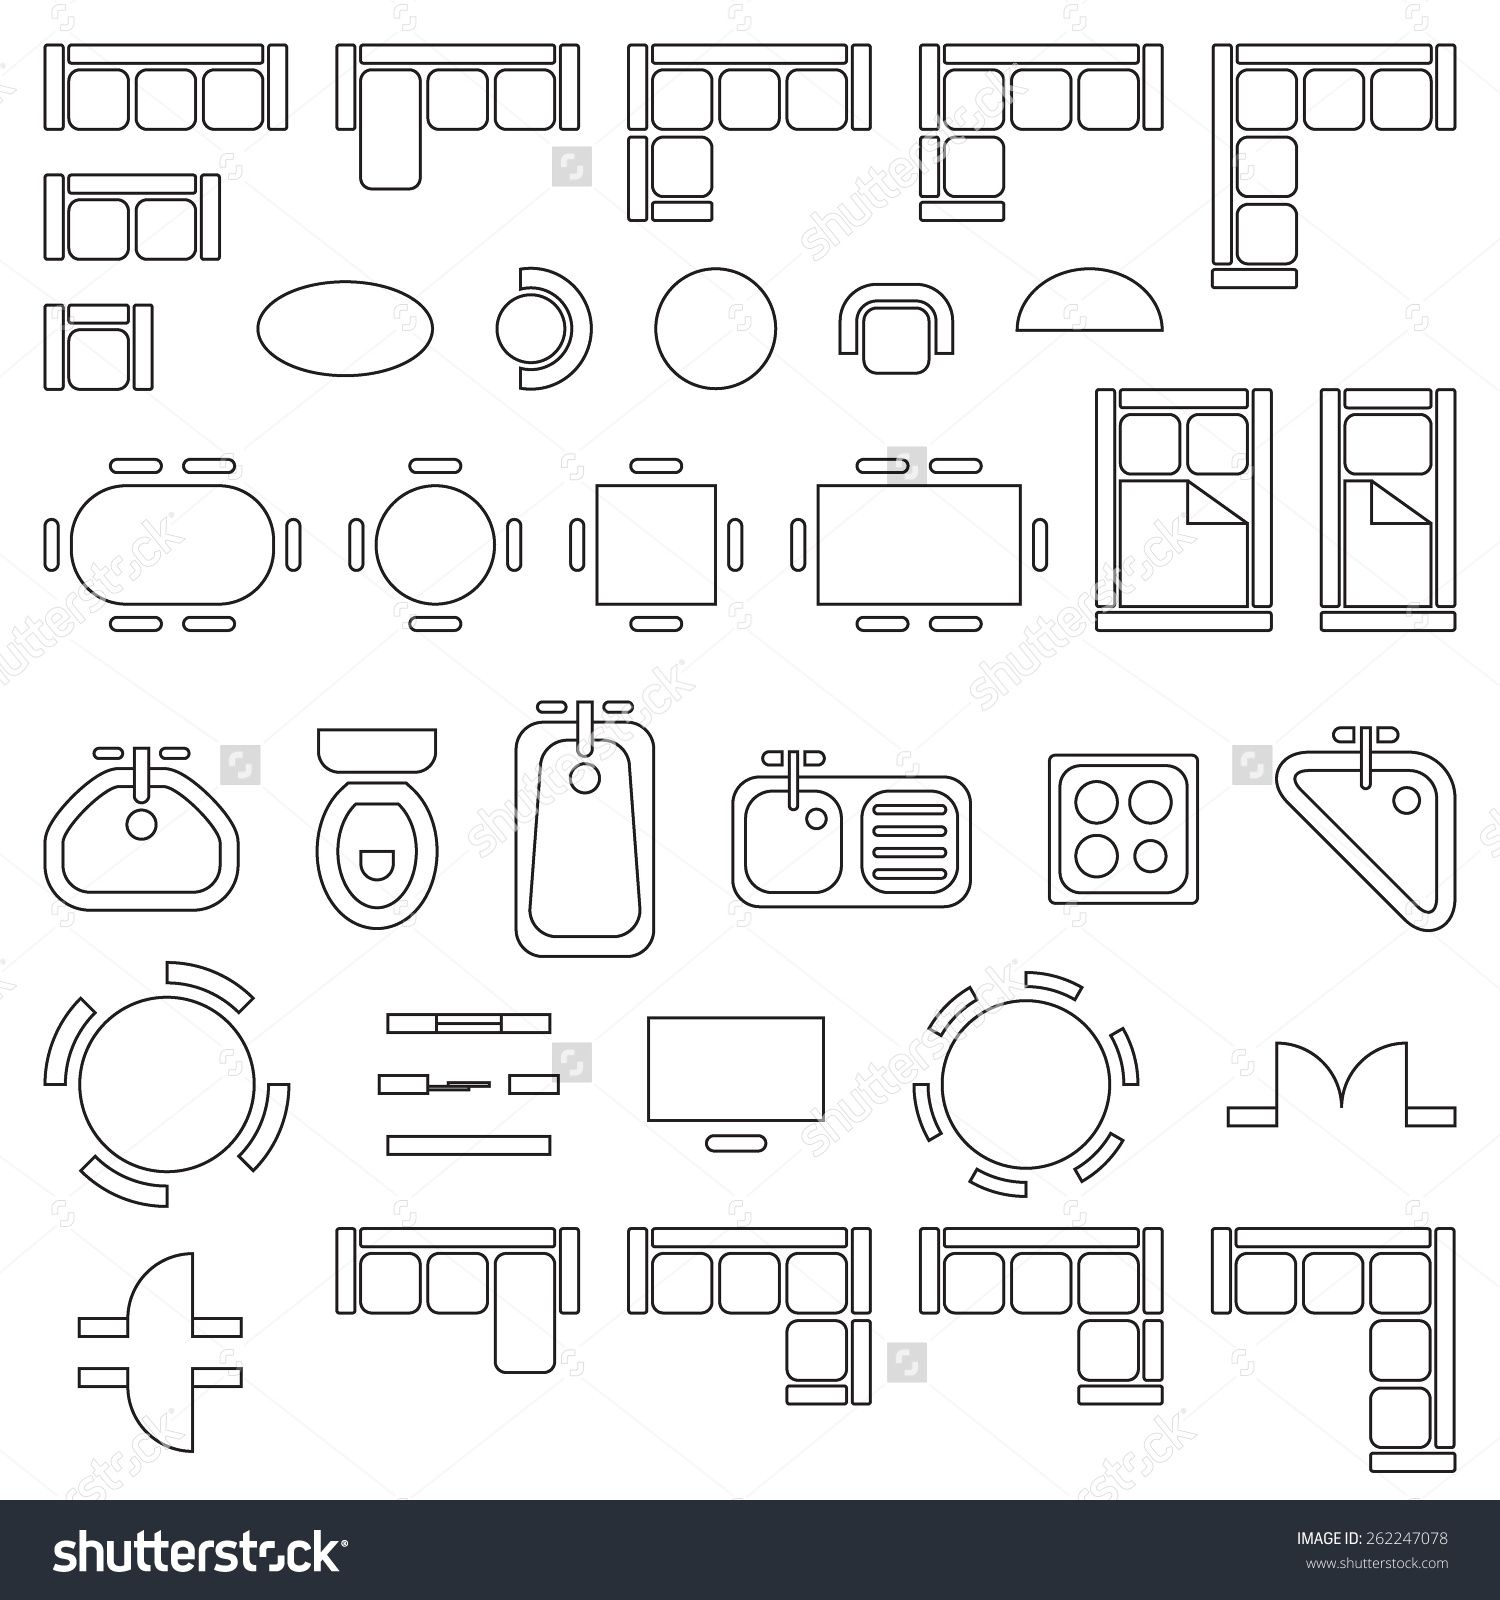 standard furniture symbols in architecture plans icons set save to a lightbox dining room centerpieces upholstered [ 1500 x 1600 Pixel ]